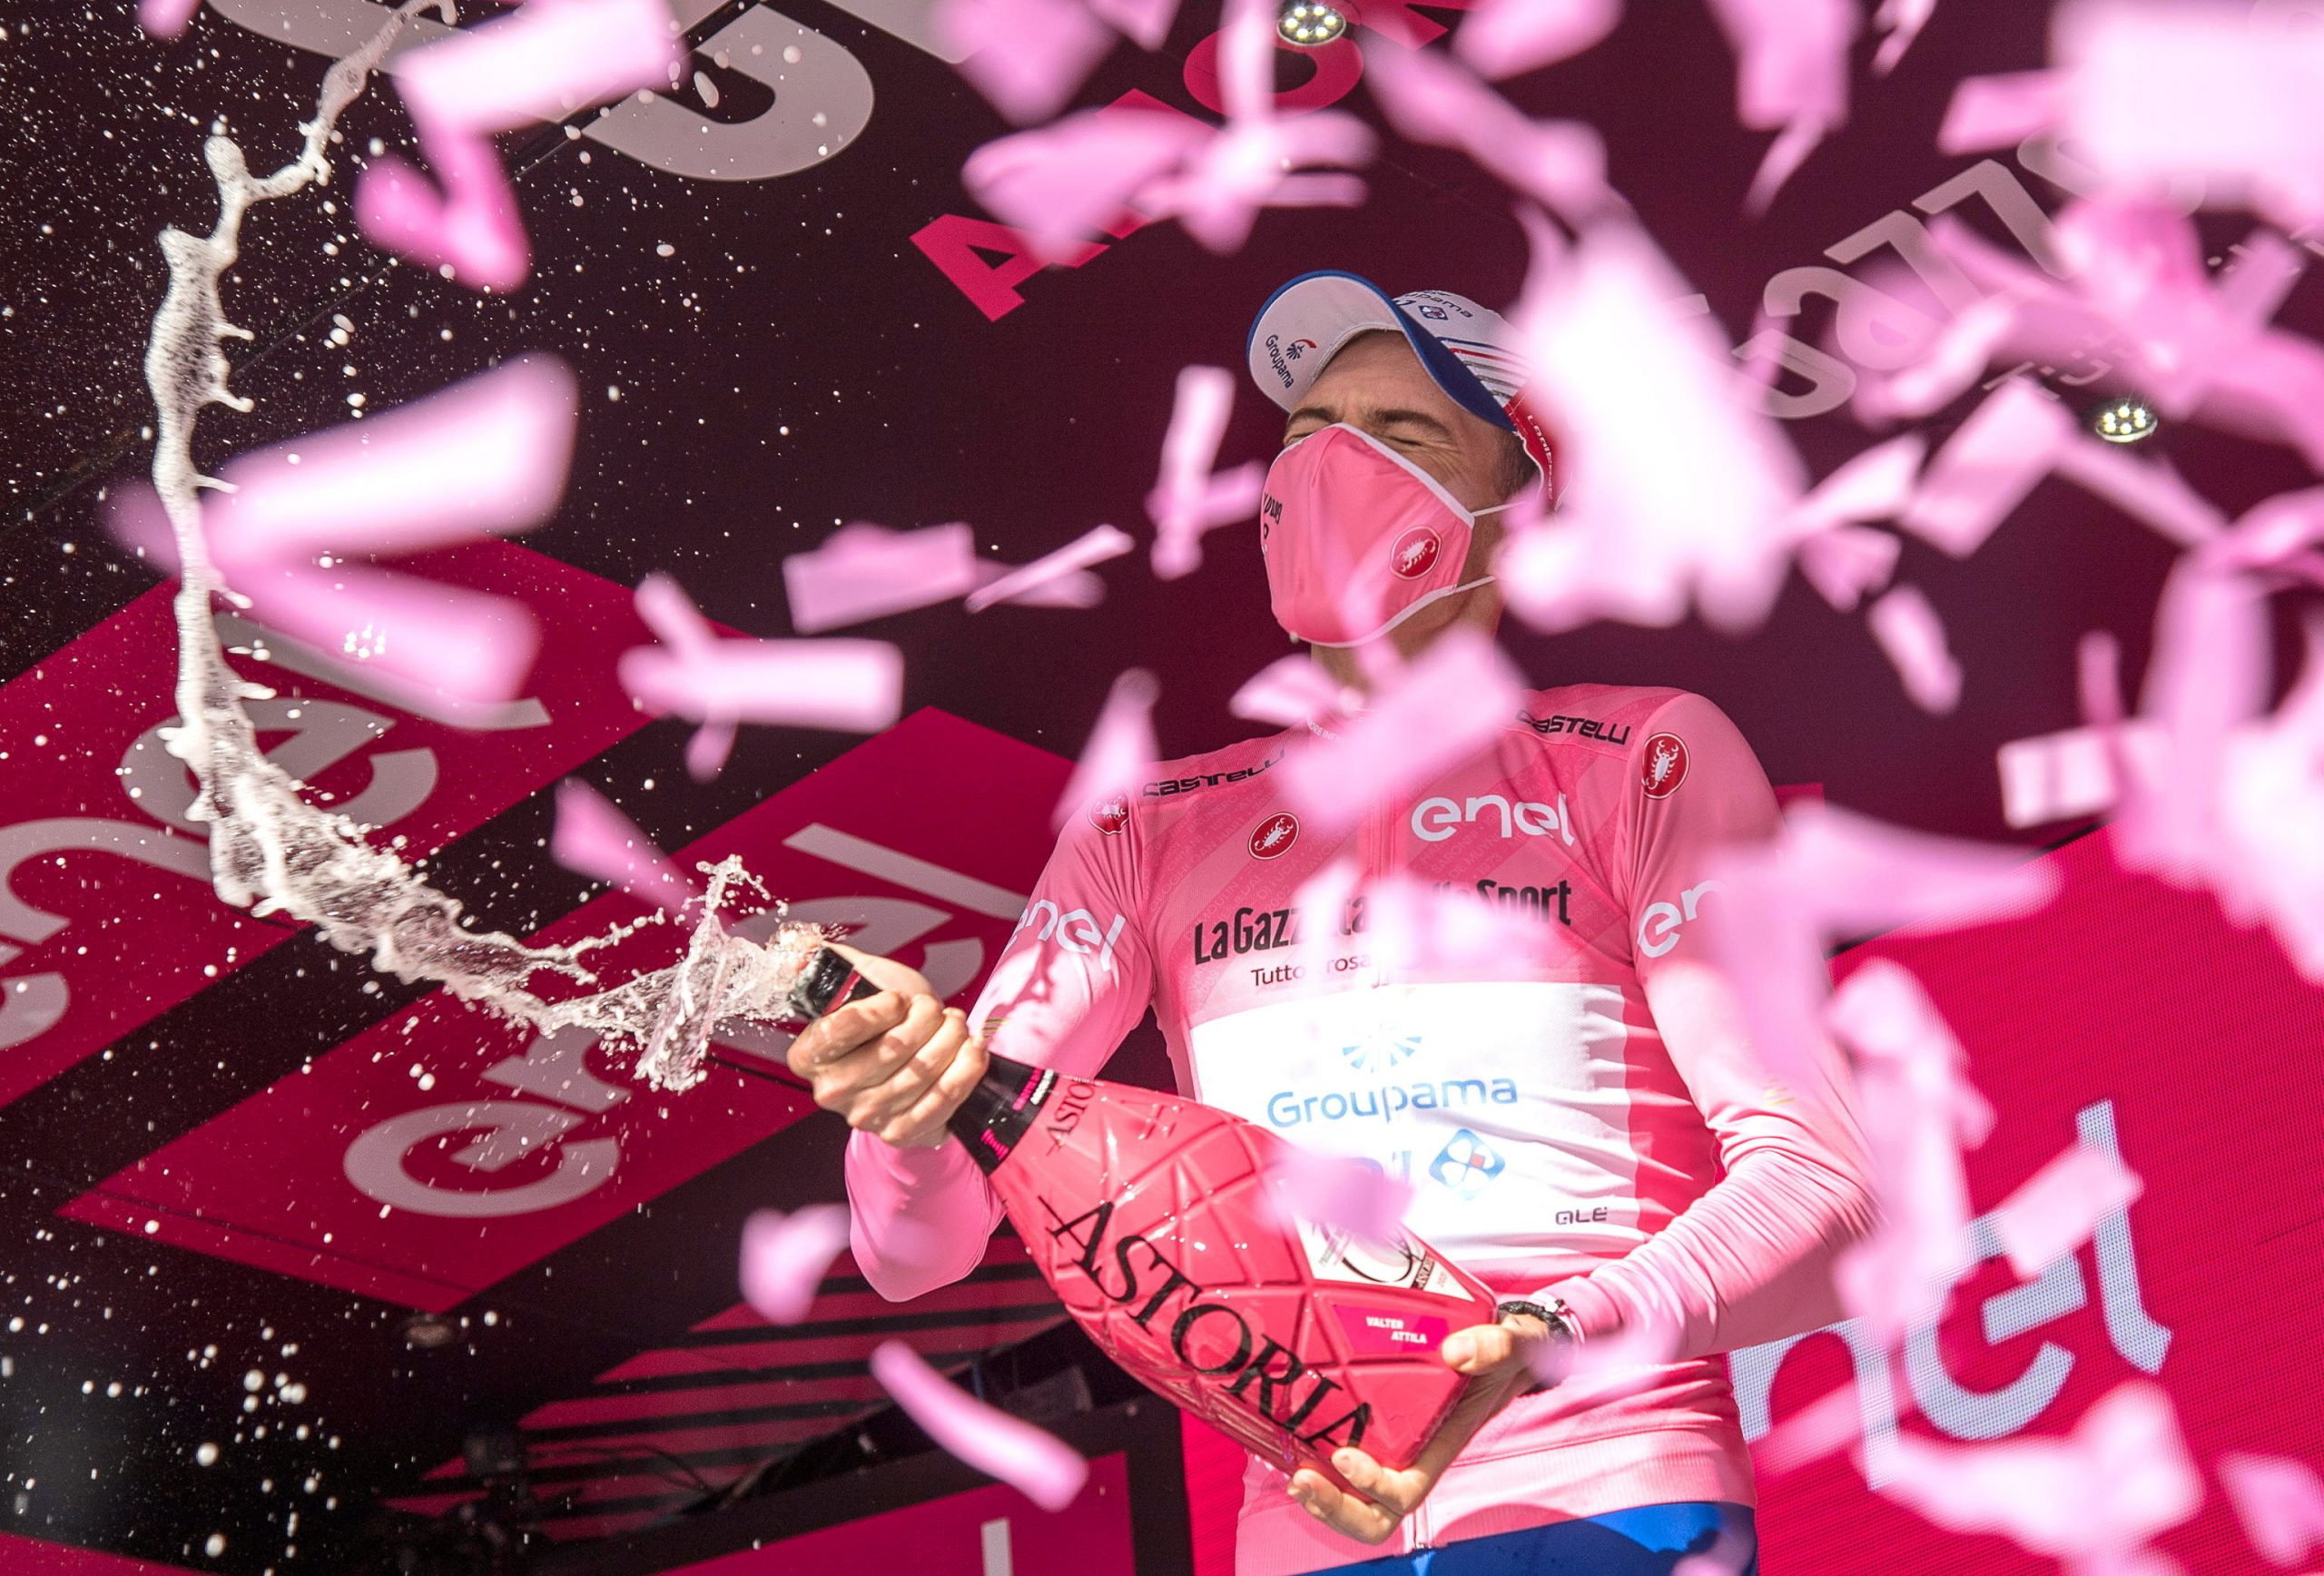 Attila Valter Becomes First Hungarian to Wear Pink Jersey in Giro d'Italia